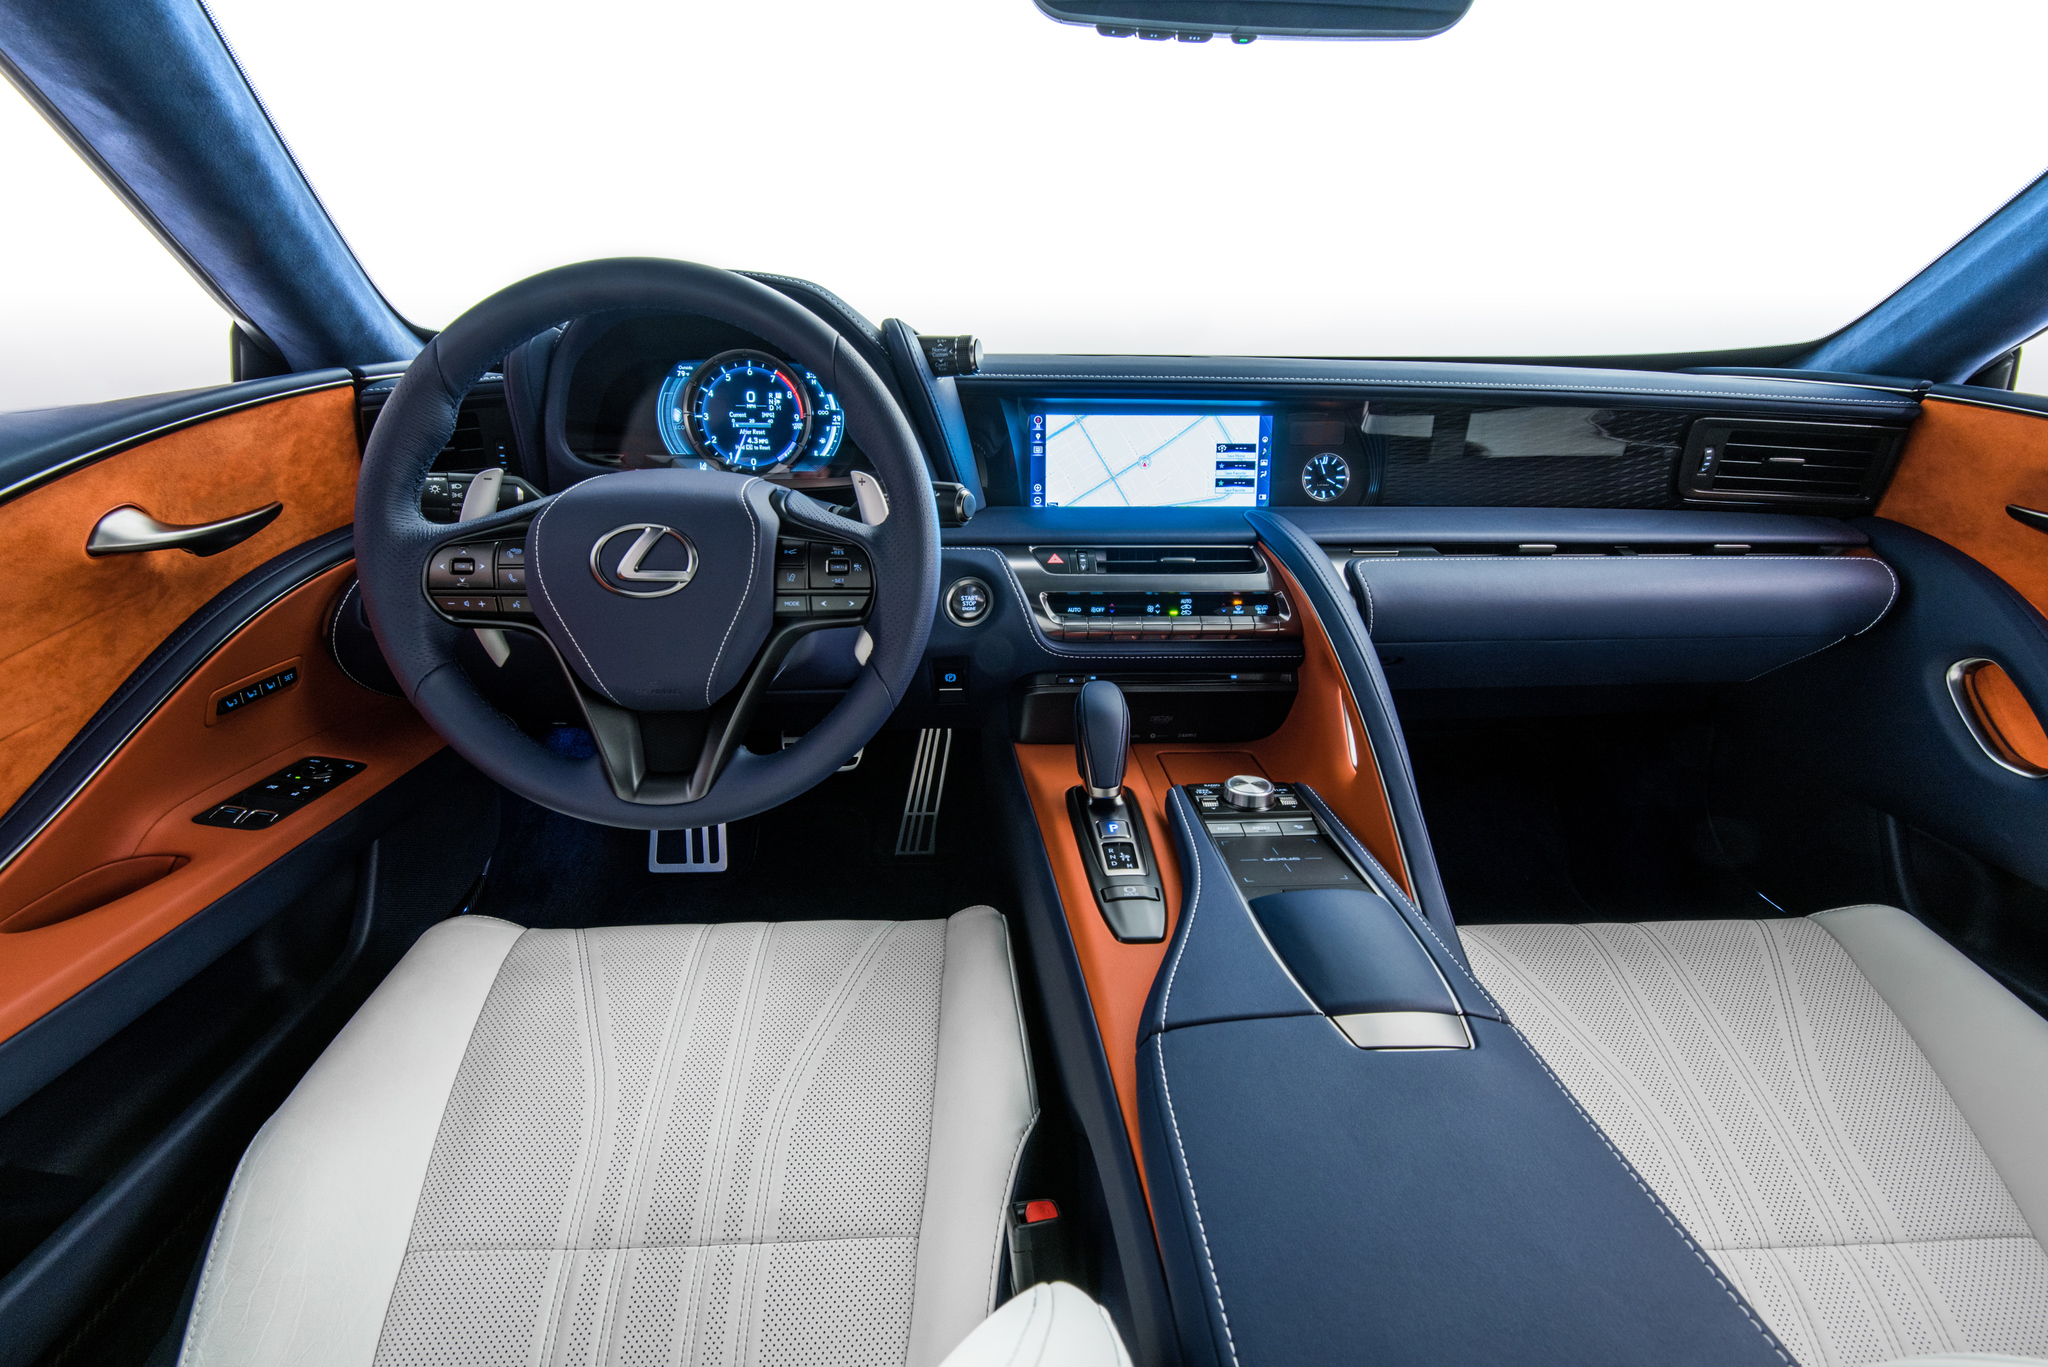 The interior of the Lexus LC500 Coupe is equally attractive, but lean your head to the left and feel a bonk. And the rear seat, well, that's just bonkers.